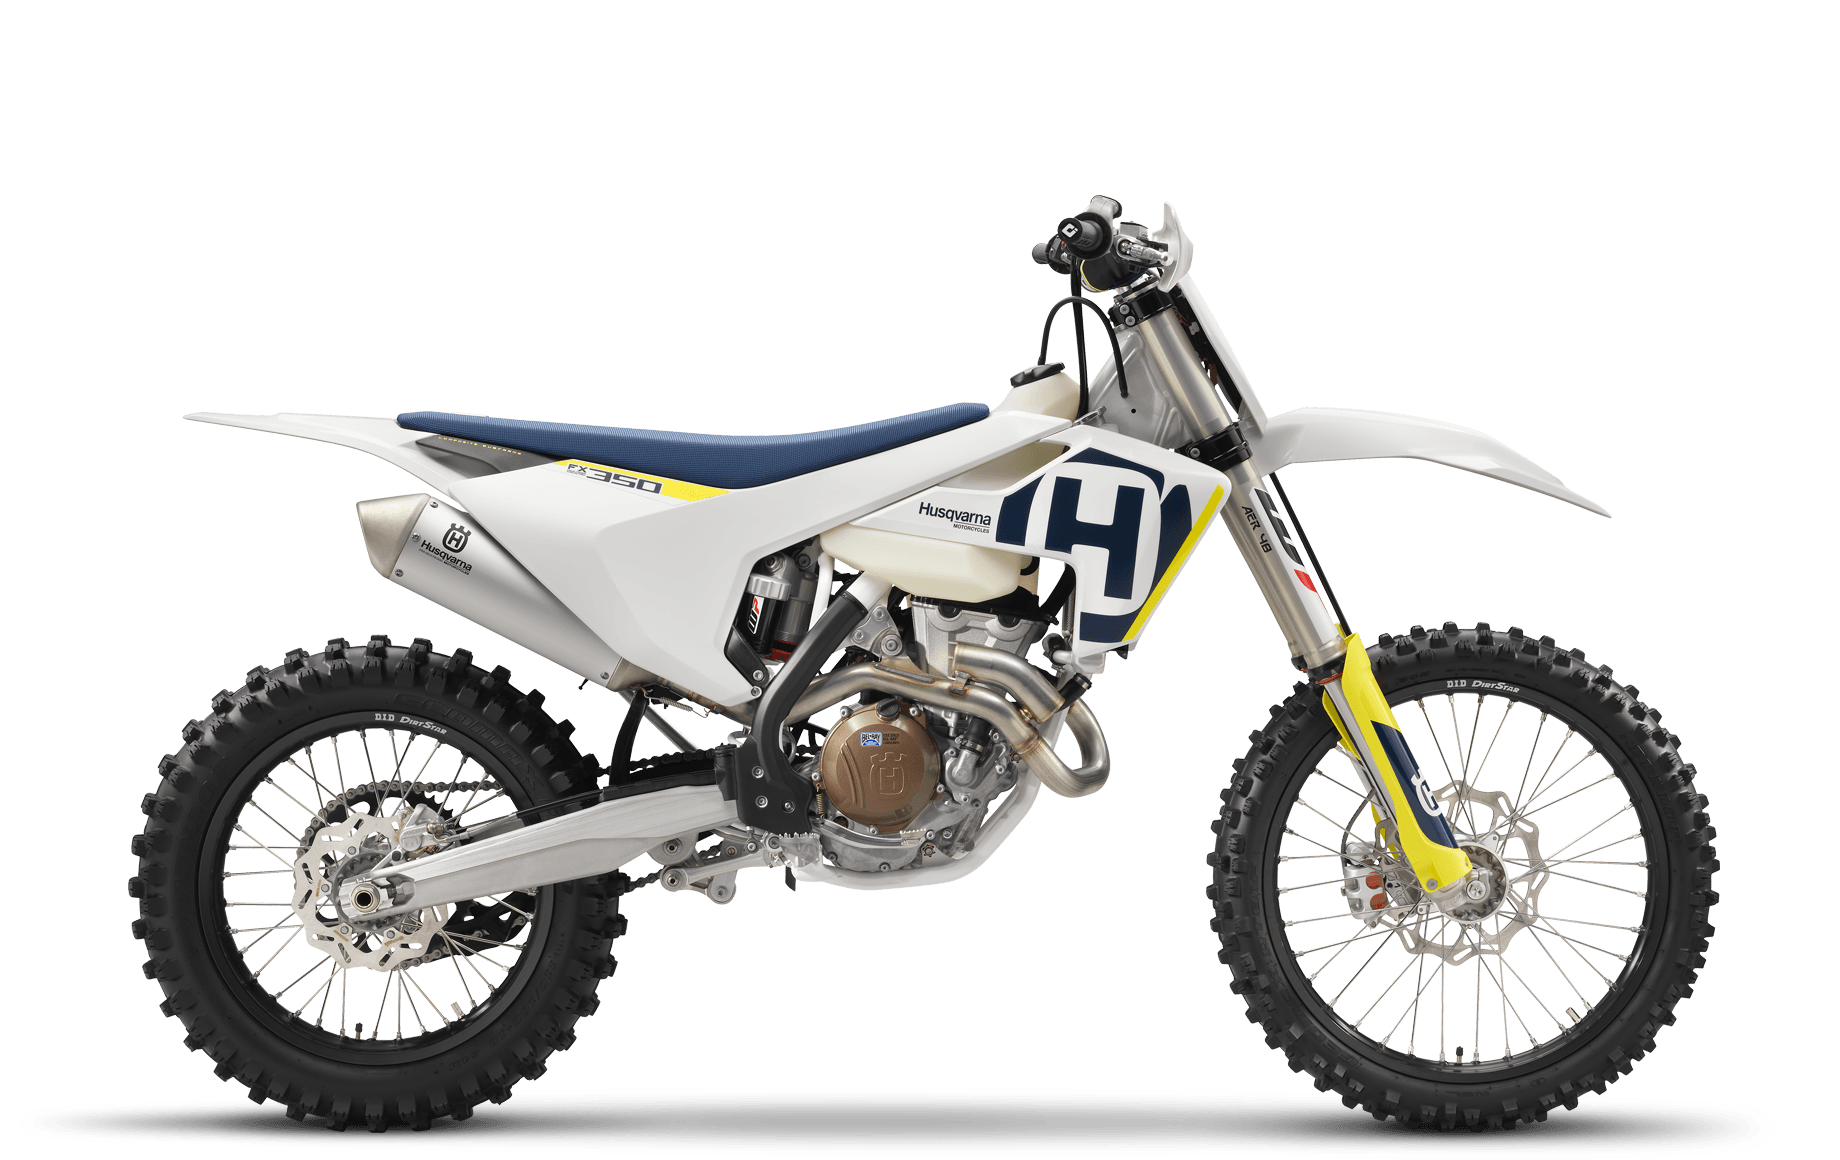 2018 Husqvarna FX 350 in Orange, California